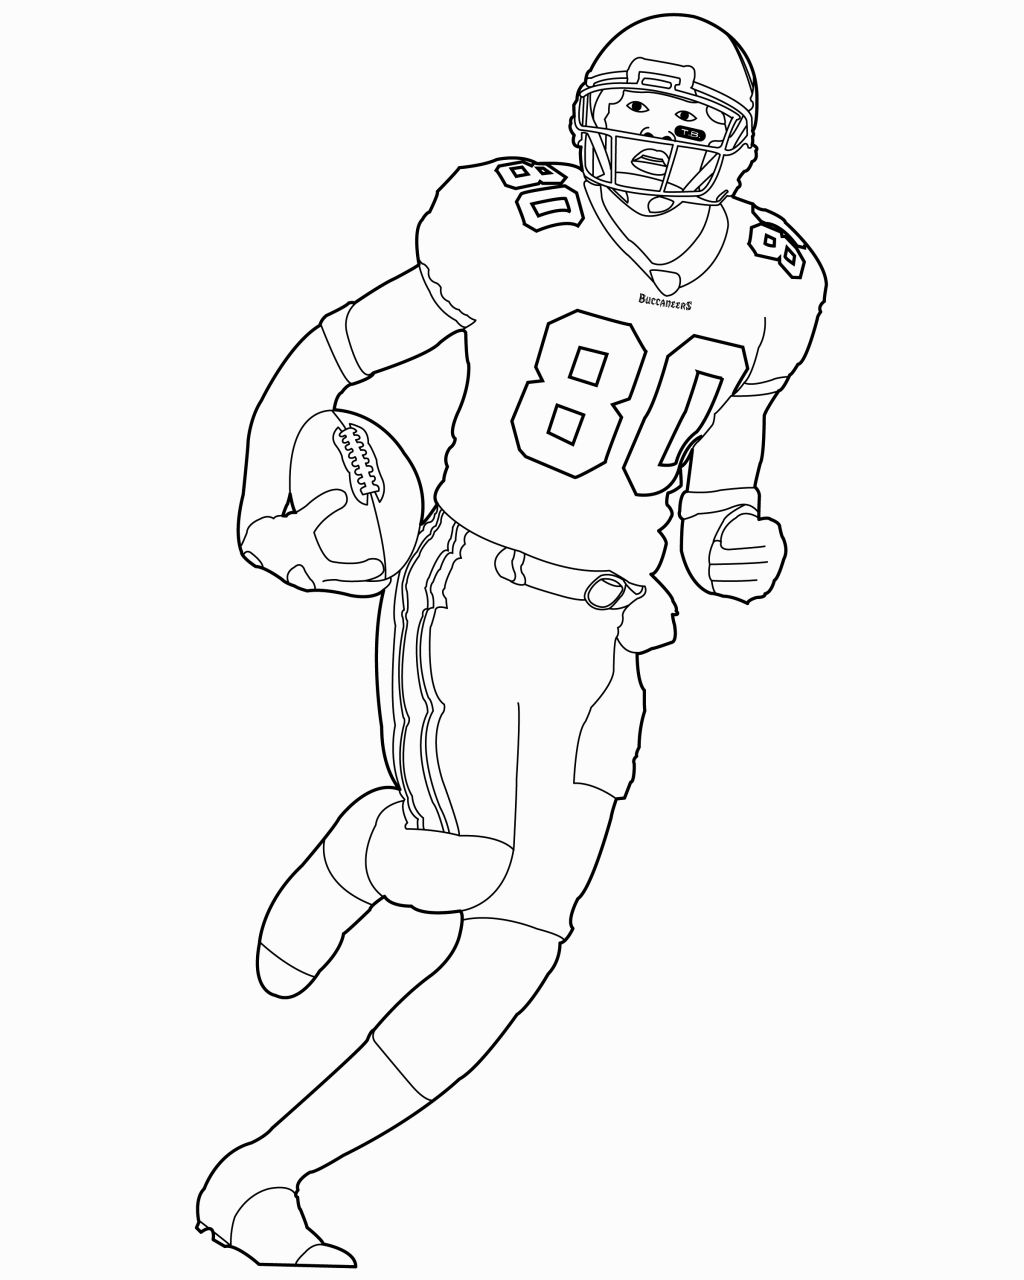 Drawn football coloring page nfl Nfl Nfl Football Football Pages